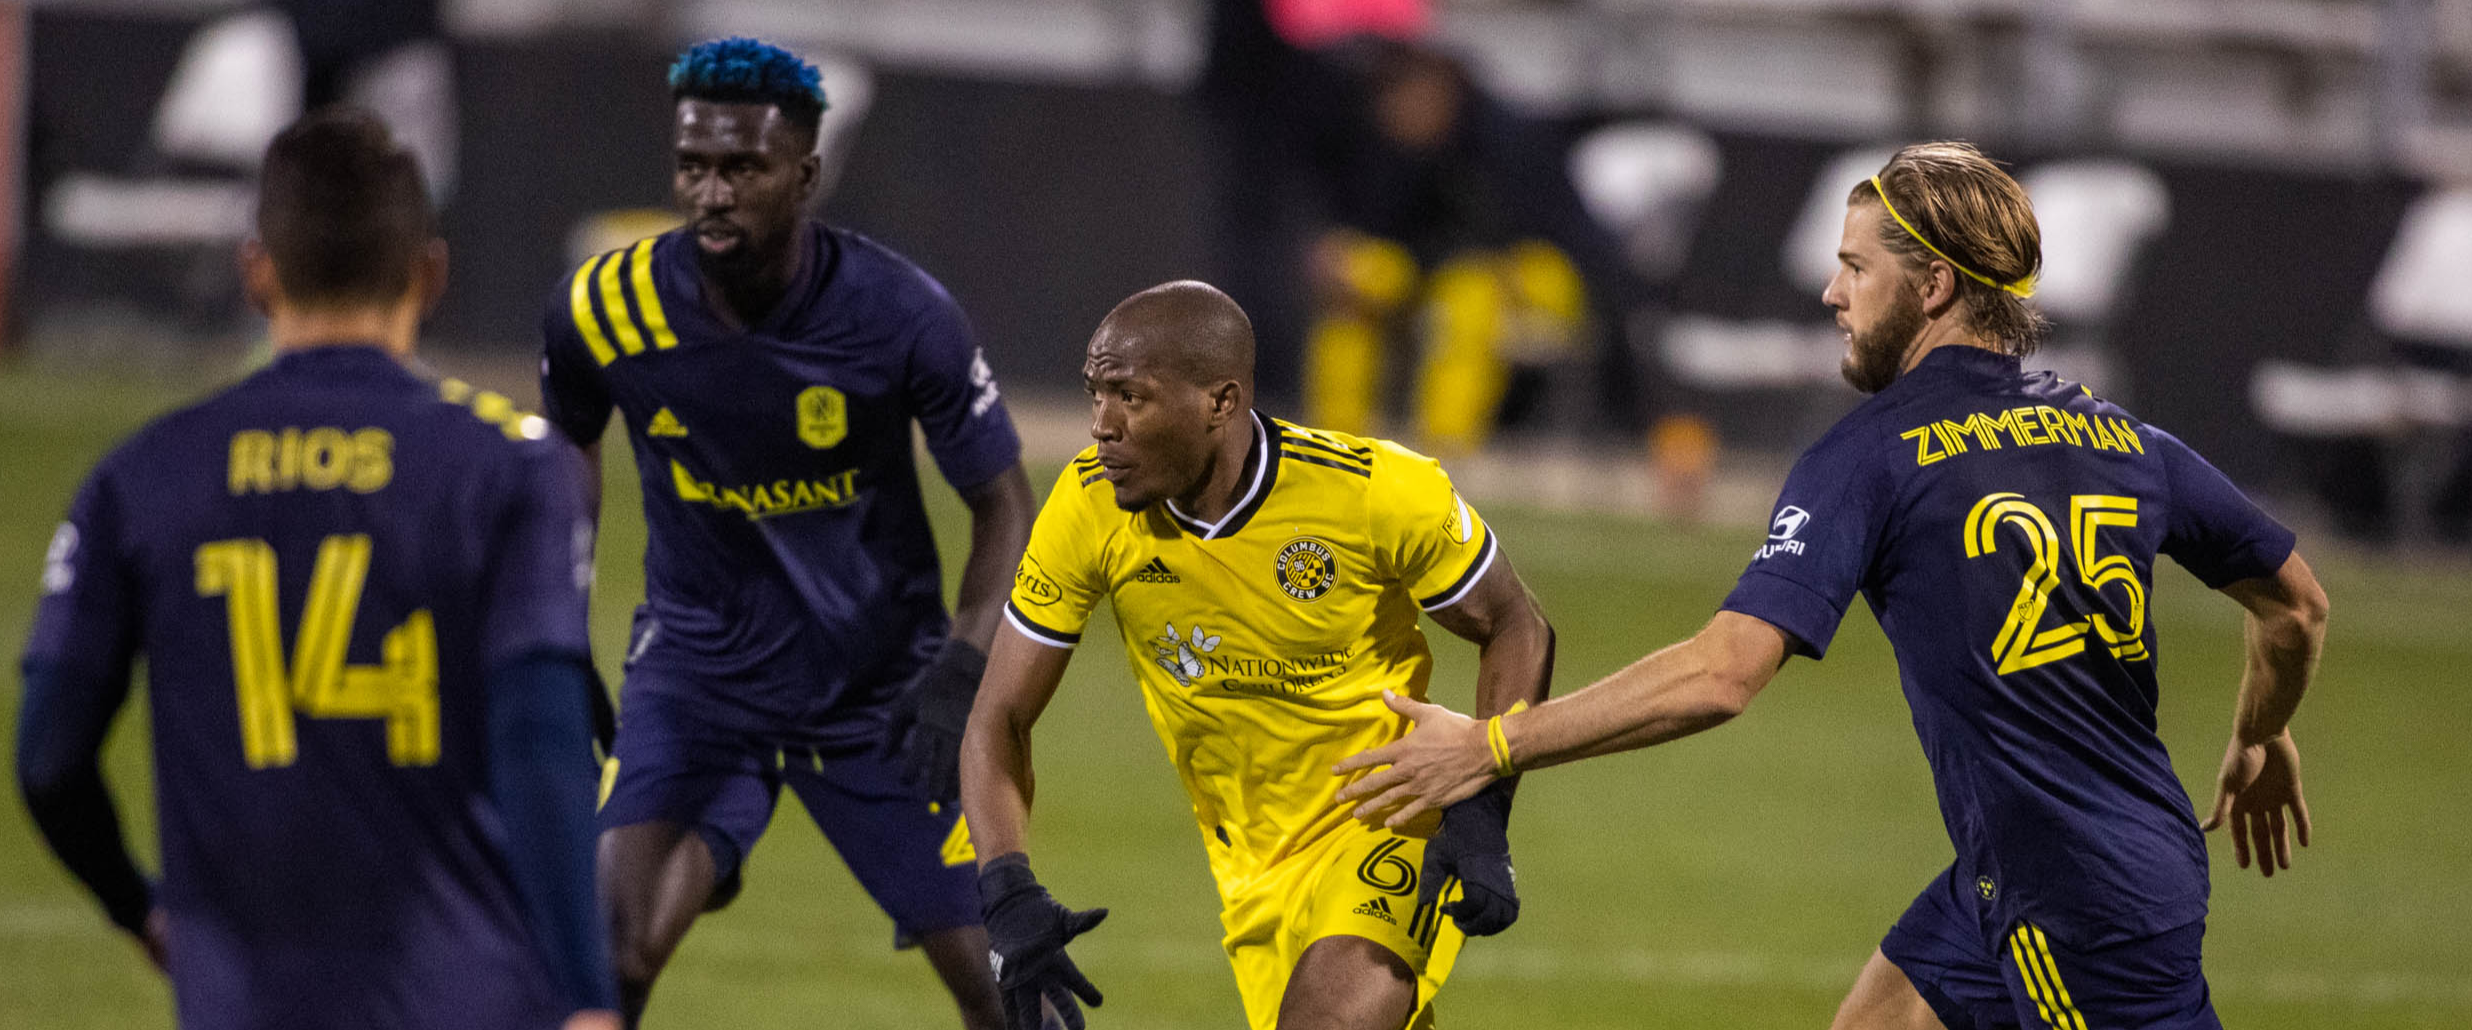 Nashville SC's brilliant inaugural season comes to an end